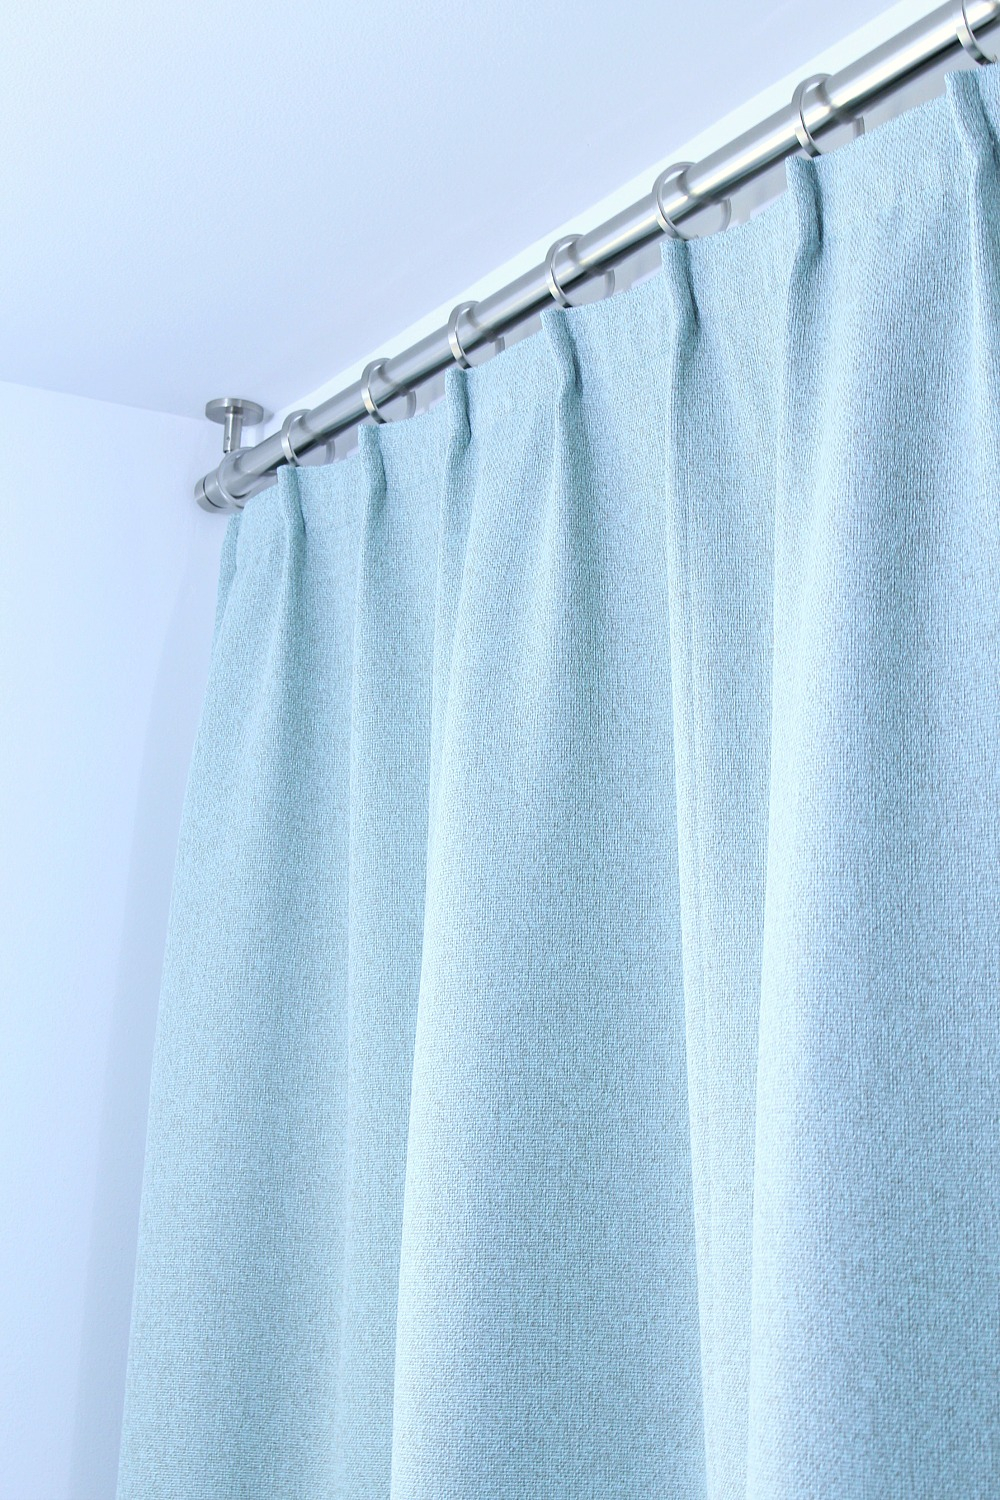 Adjustable Fixed Shower Curtain Rod • Shower Curtains Ideas